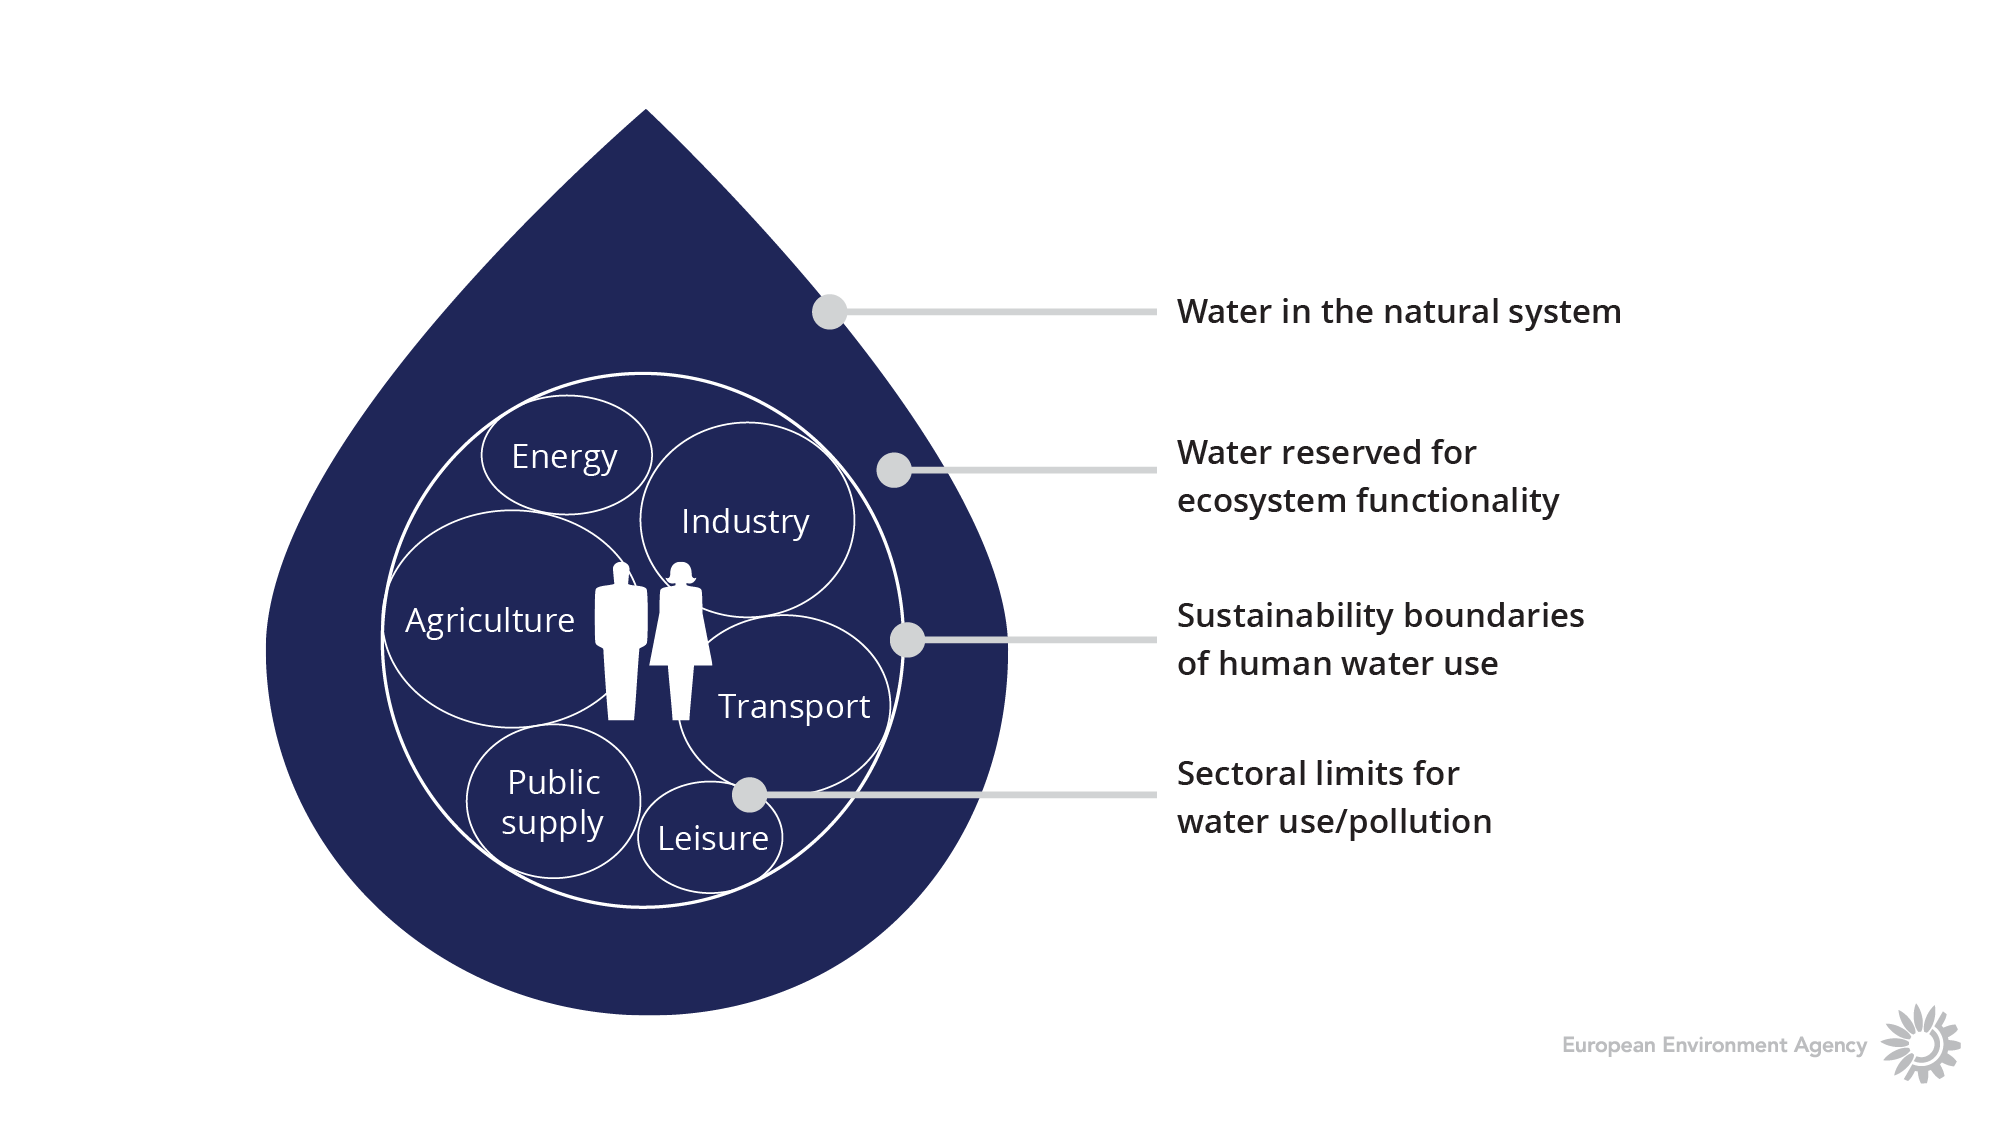 Sustainable water allocations to ecosystems and competing users